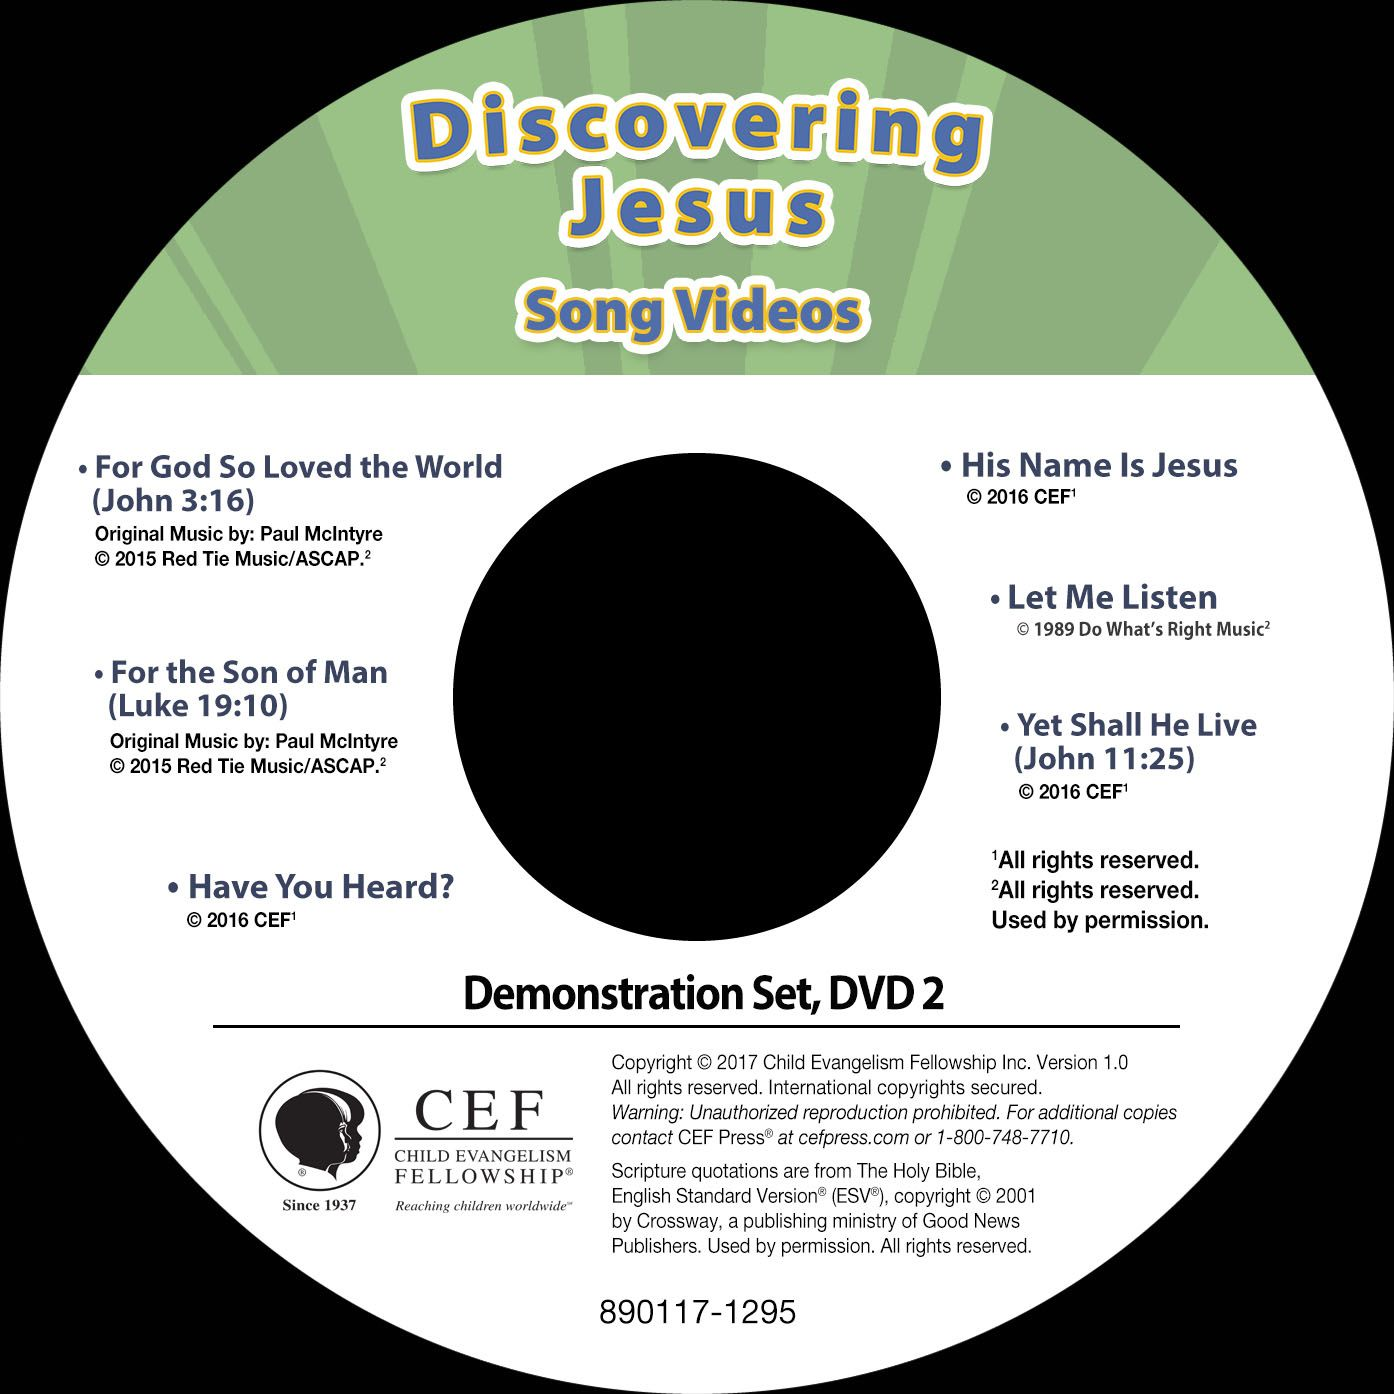 Discovering Jesus Song Video Album MP4 'Download' | VBS Supplies